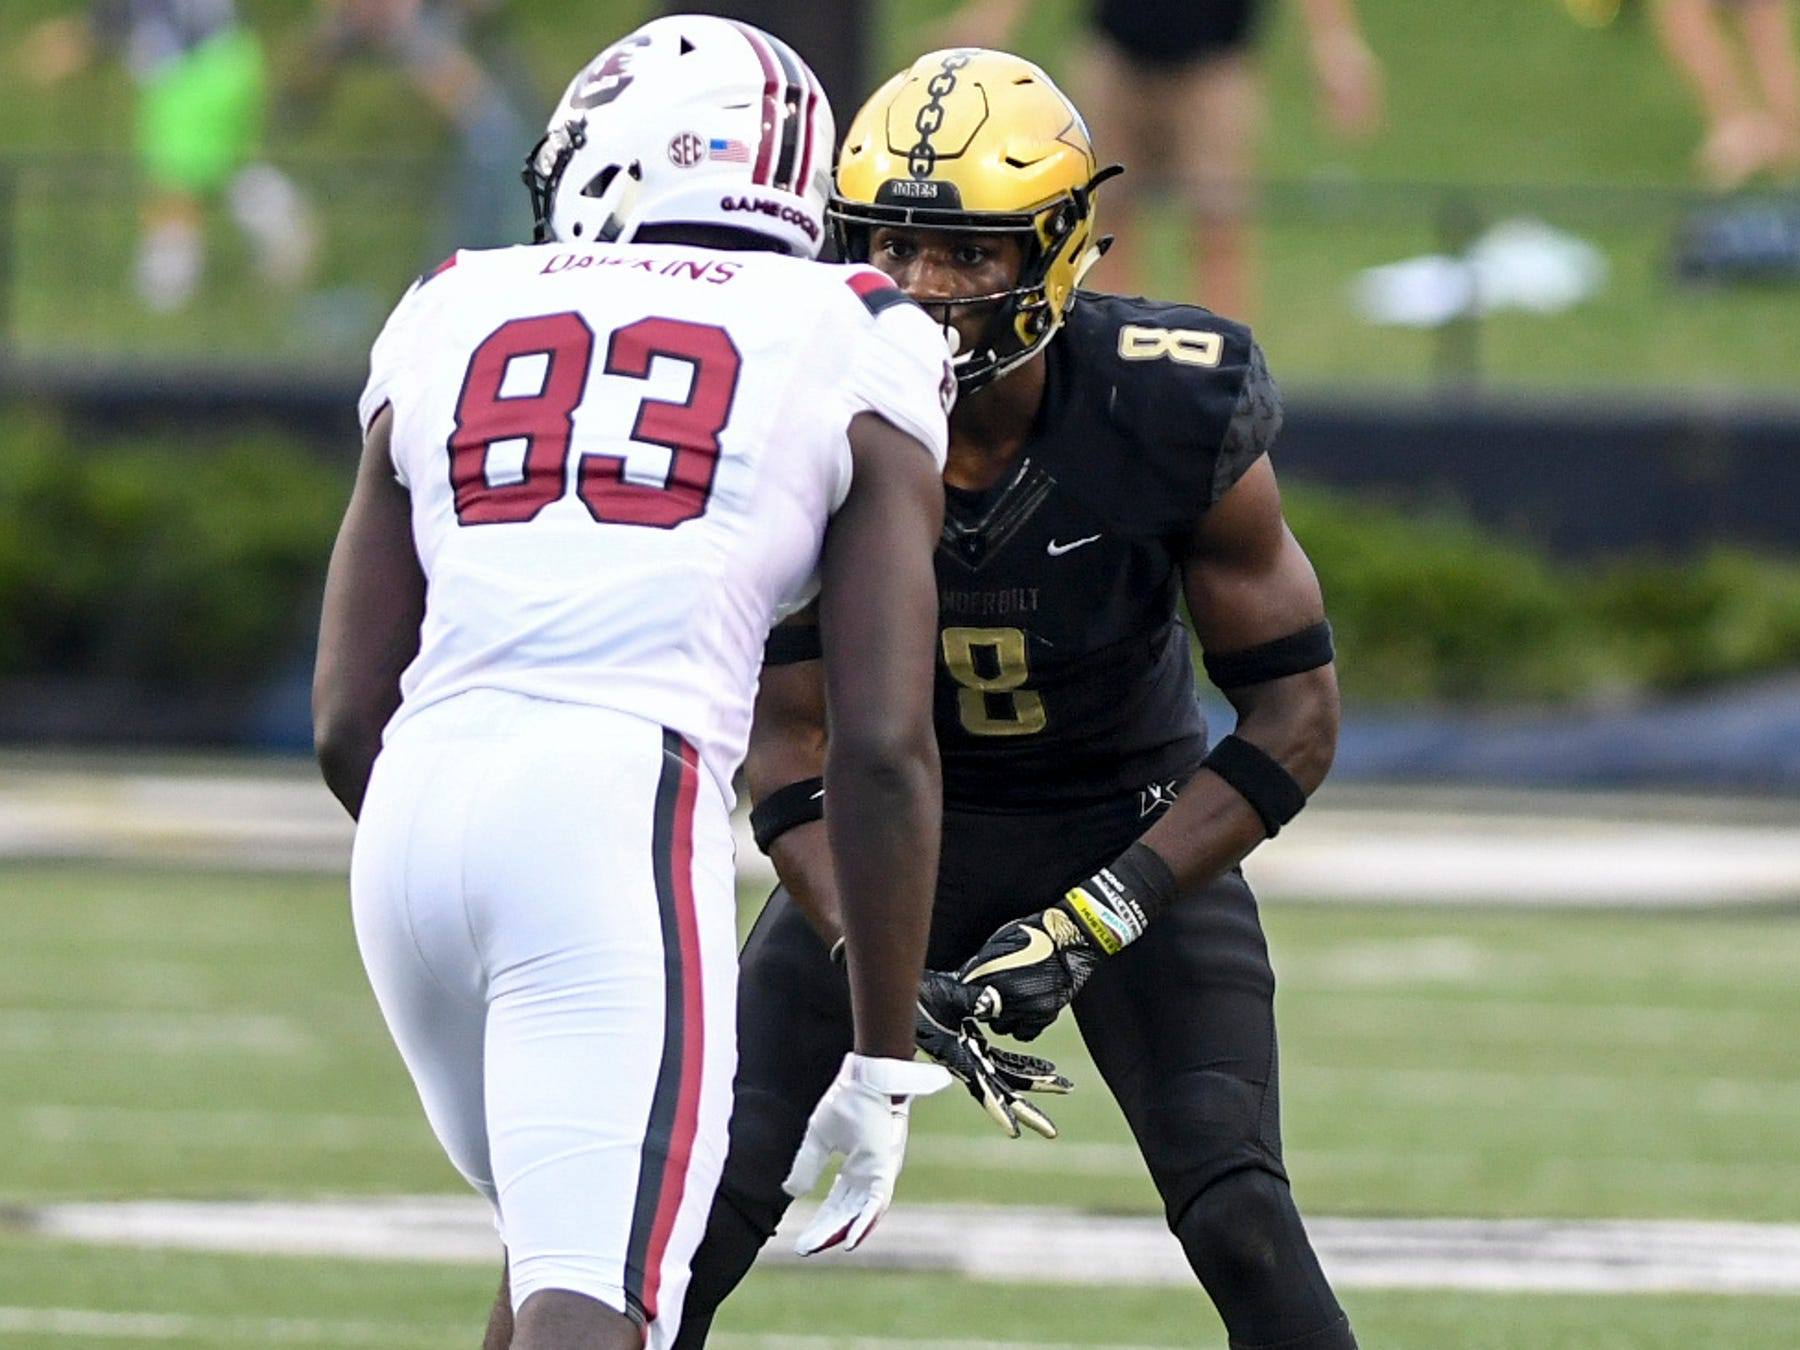 Vanderbilt cornerback Joejuan Williams (8) guards South Carolina wide receiver Chavis Dawkins (83) before the snap during their game, Saturday, September 22.